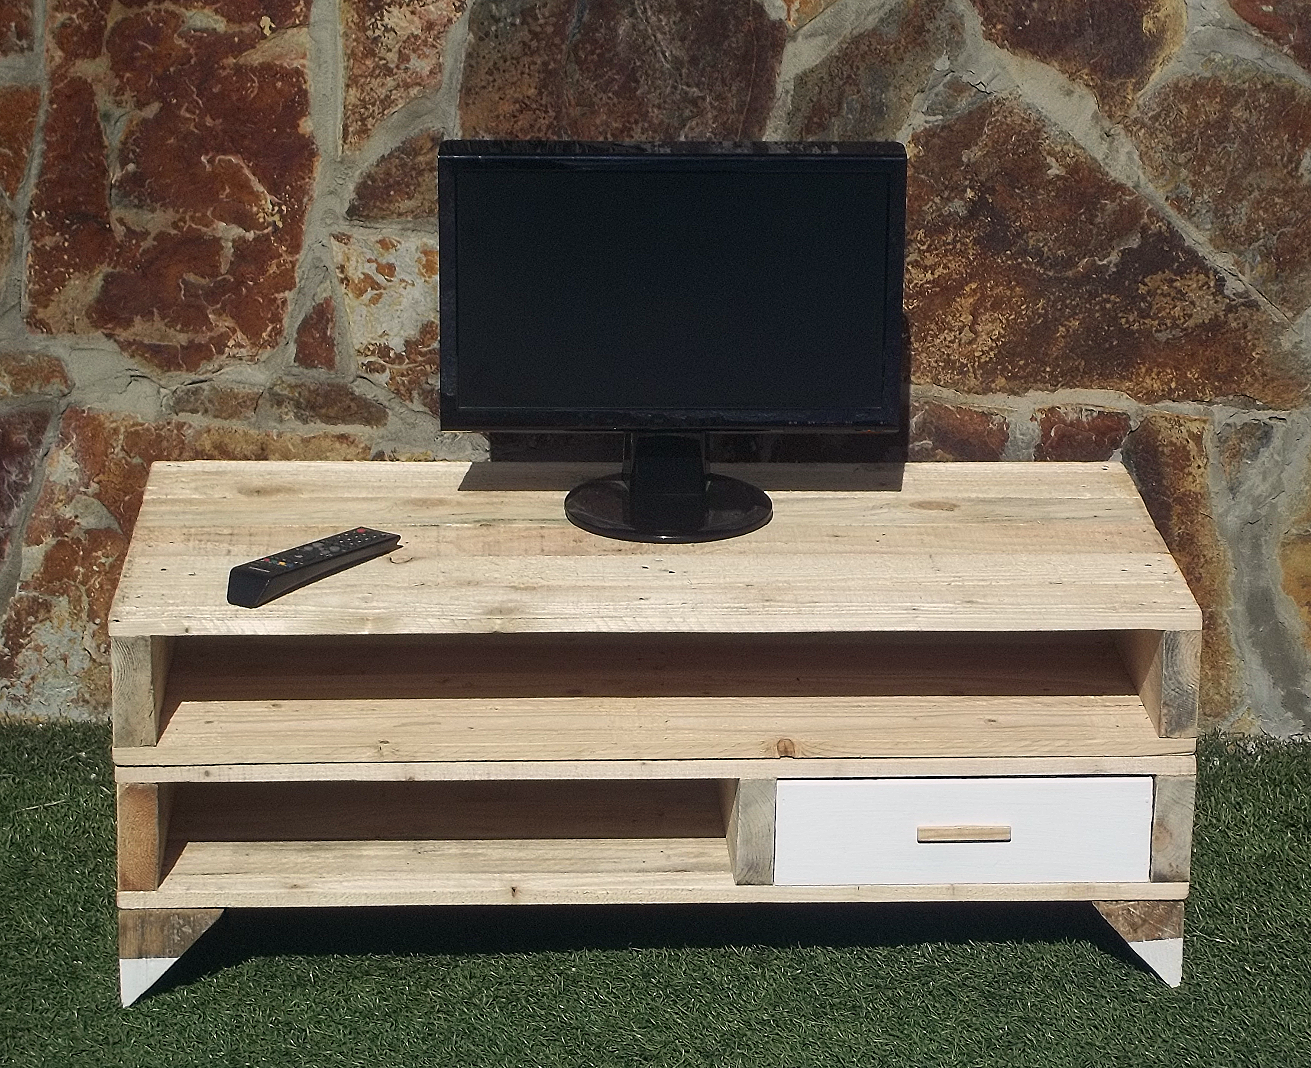 Mueble tv hecho con palets gohan - Palets para muebles ...